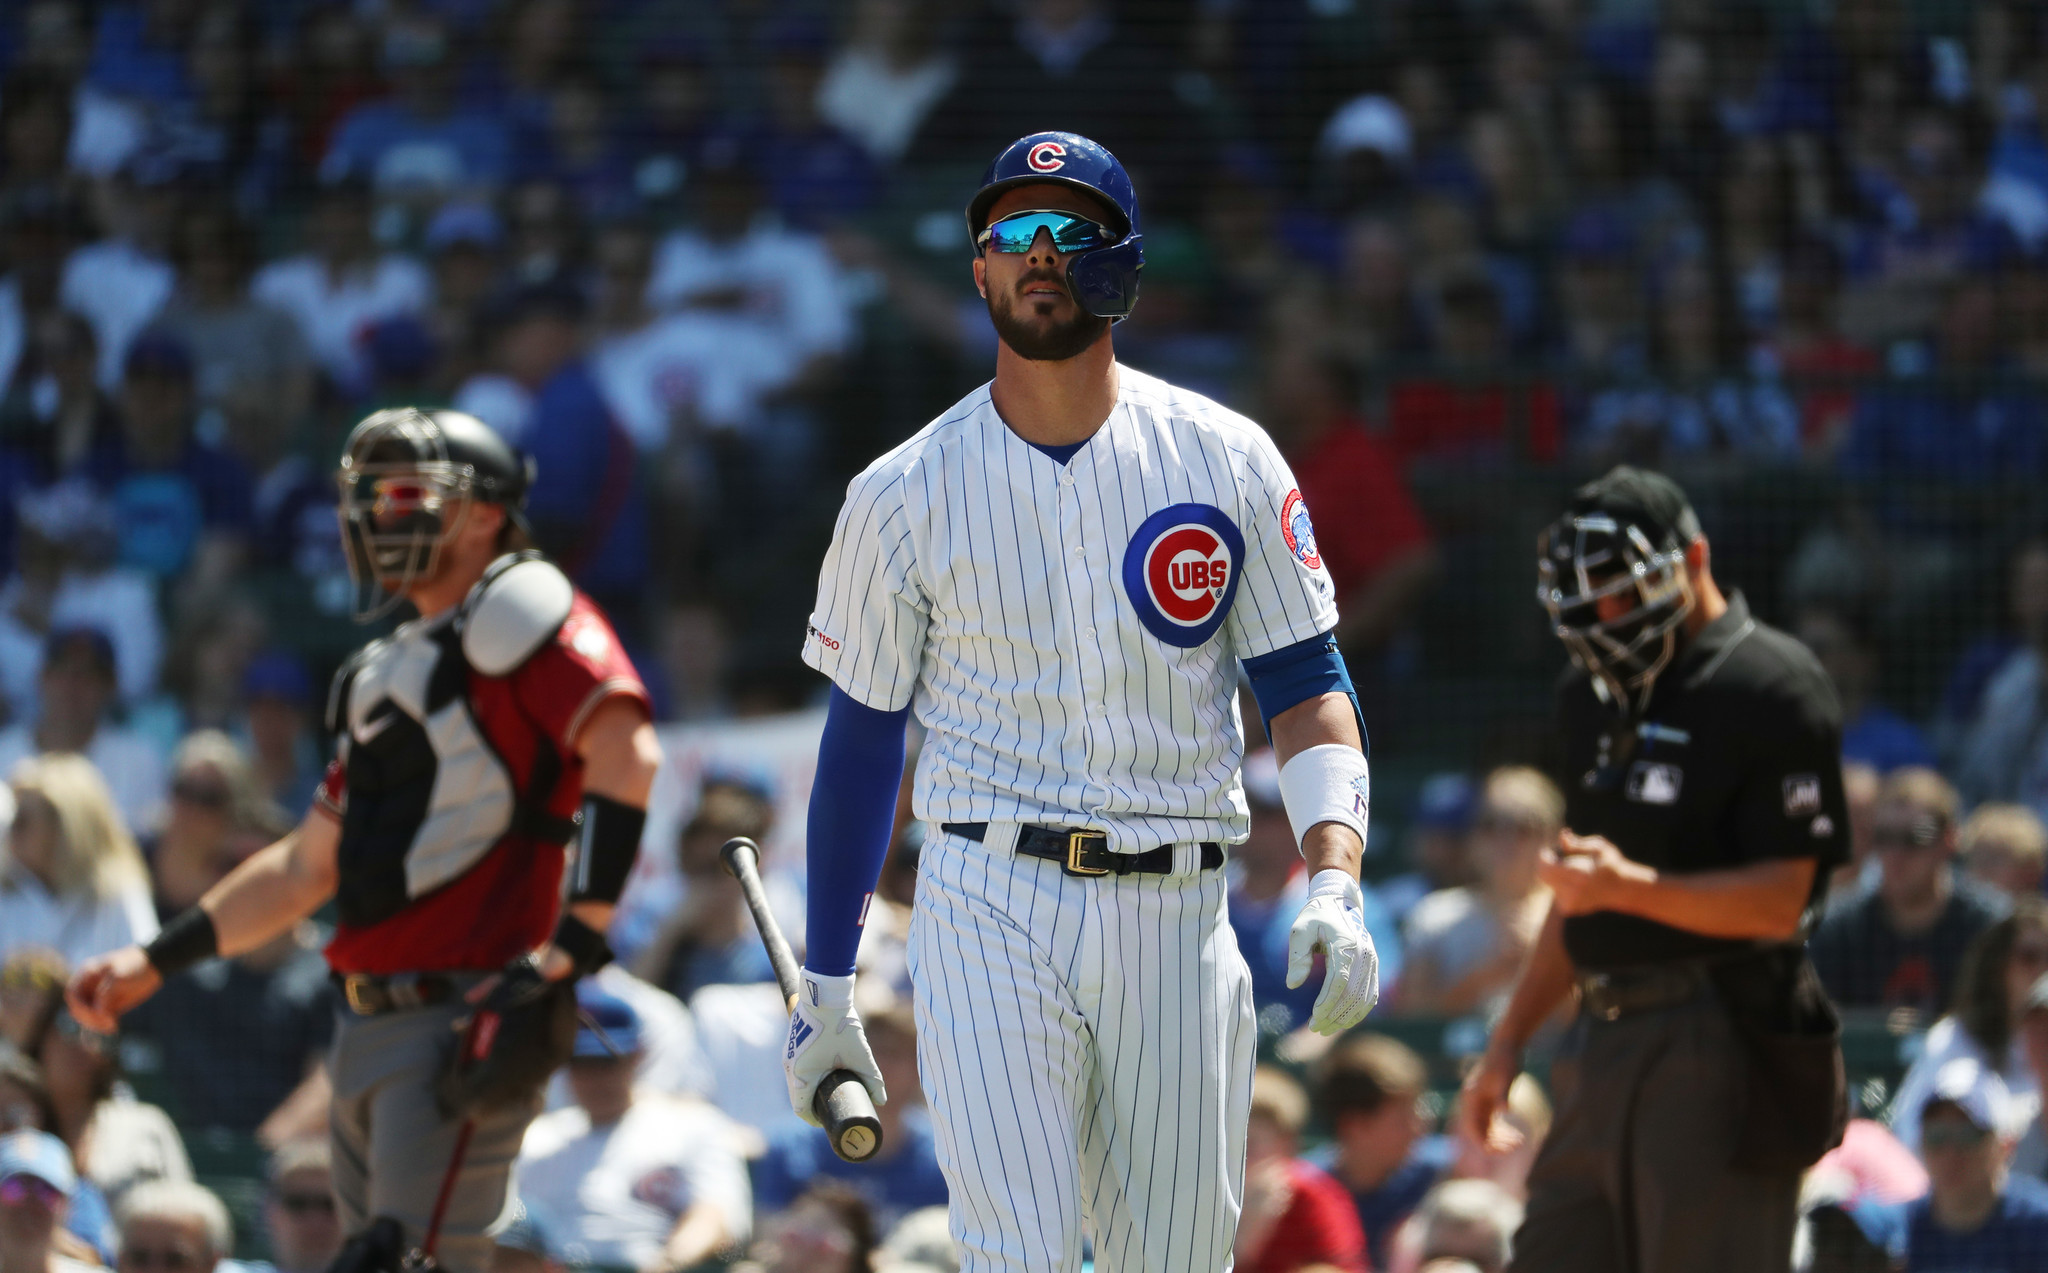 Kris Bryant's career-best on-base streak ends at 26 games, but the Cubs slugger is showing signs he's returning to MVP form